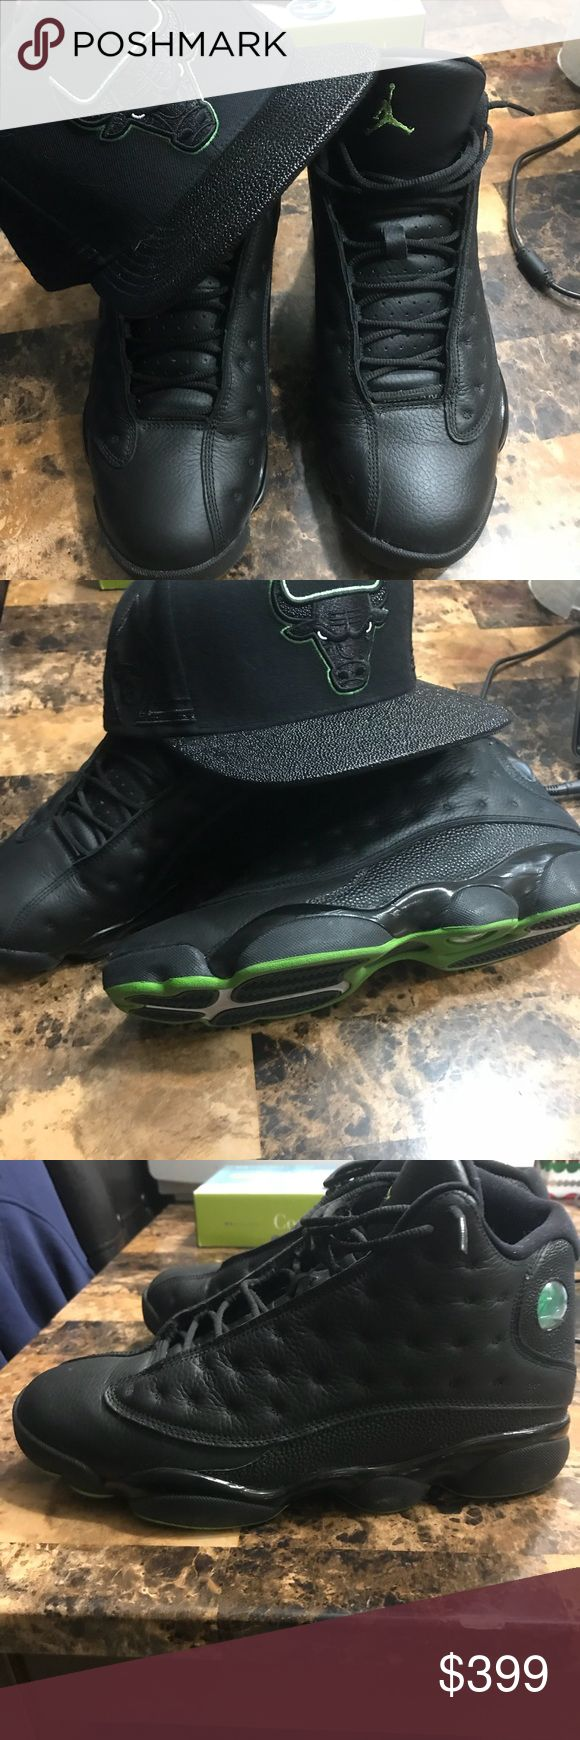 Jordan XIII Jordan 13 SZ 11 Worn only 3 times. Men's Jordan XIII . They are all black with green soles . They are  size 11. Also sold with matching Mitchell & Ness SnapBack. Open to offers. Rare sneakers and hard to find in size 11 Jordan XIII Shoes Sneakers #sneakersjordans